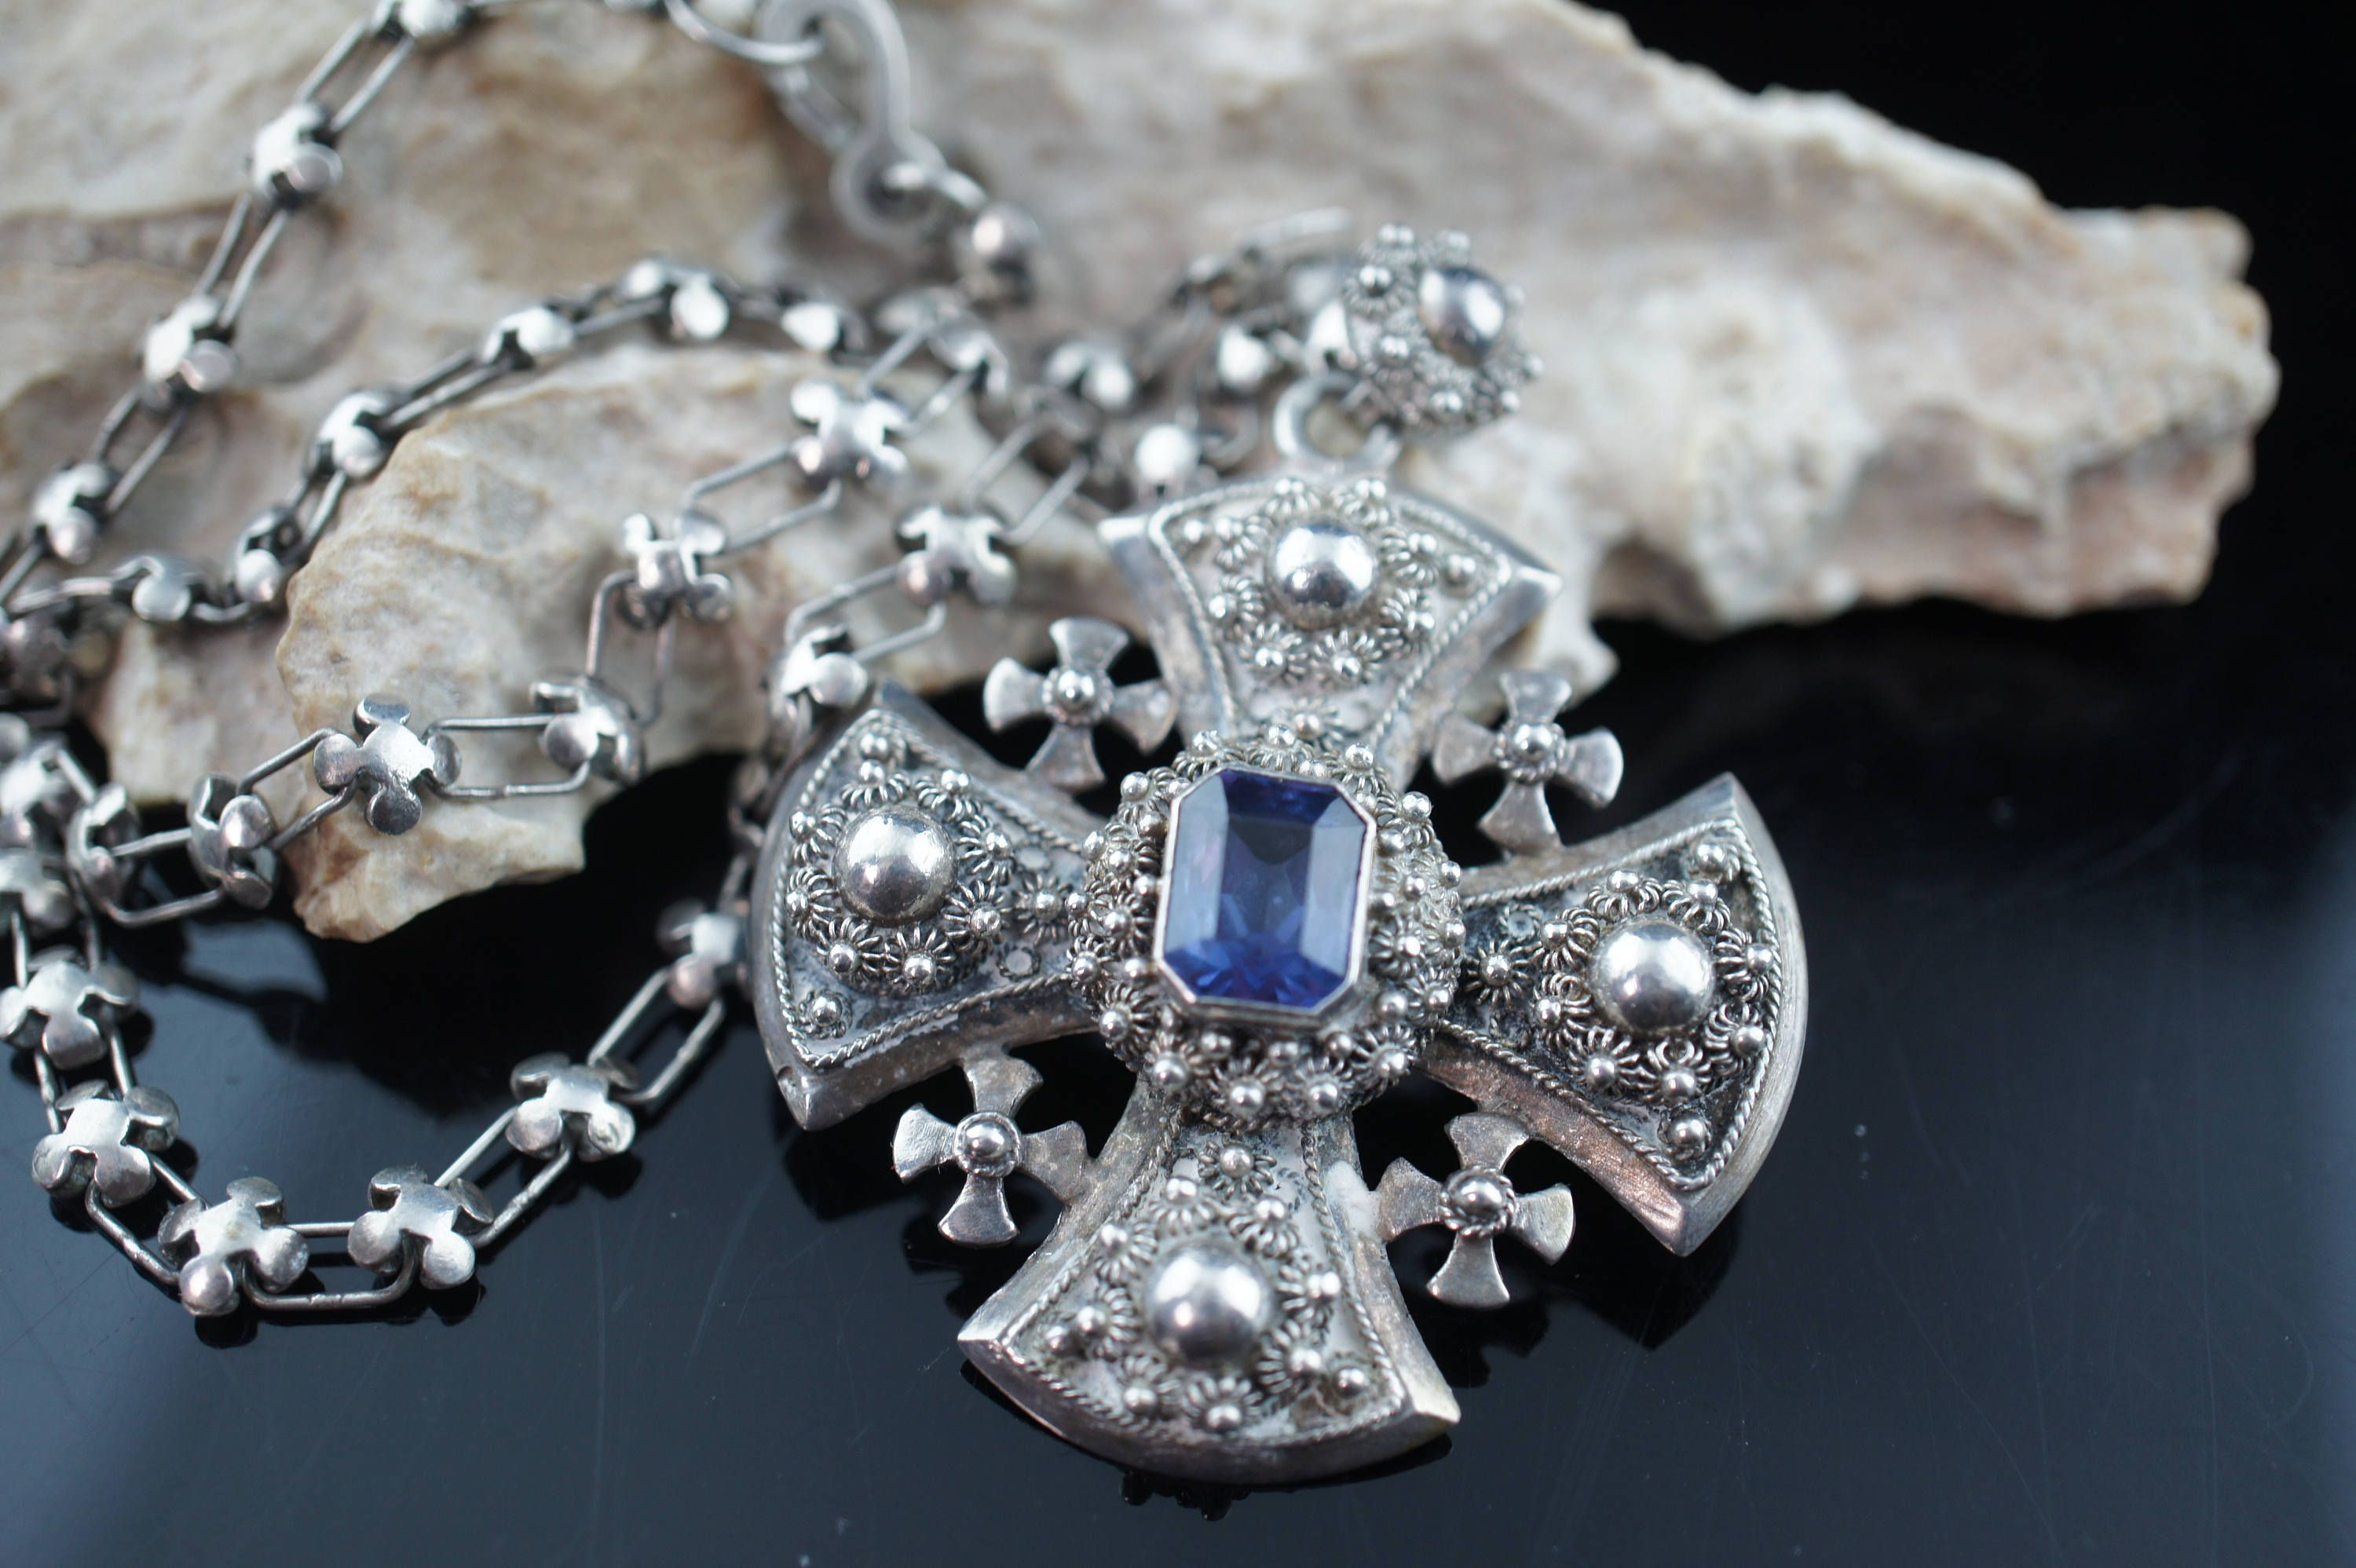 auction large ornate pendant original secondhand cross crusaders beautiful jewellery silver jerusalem auctions